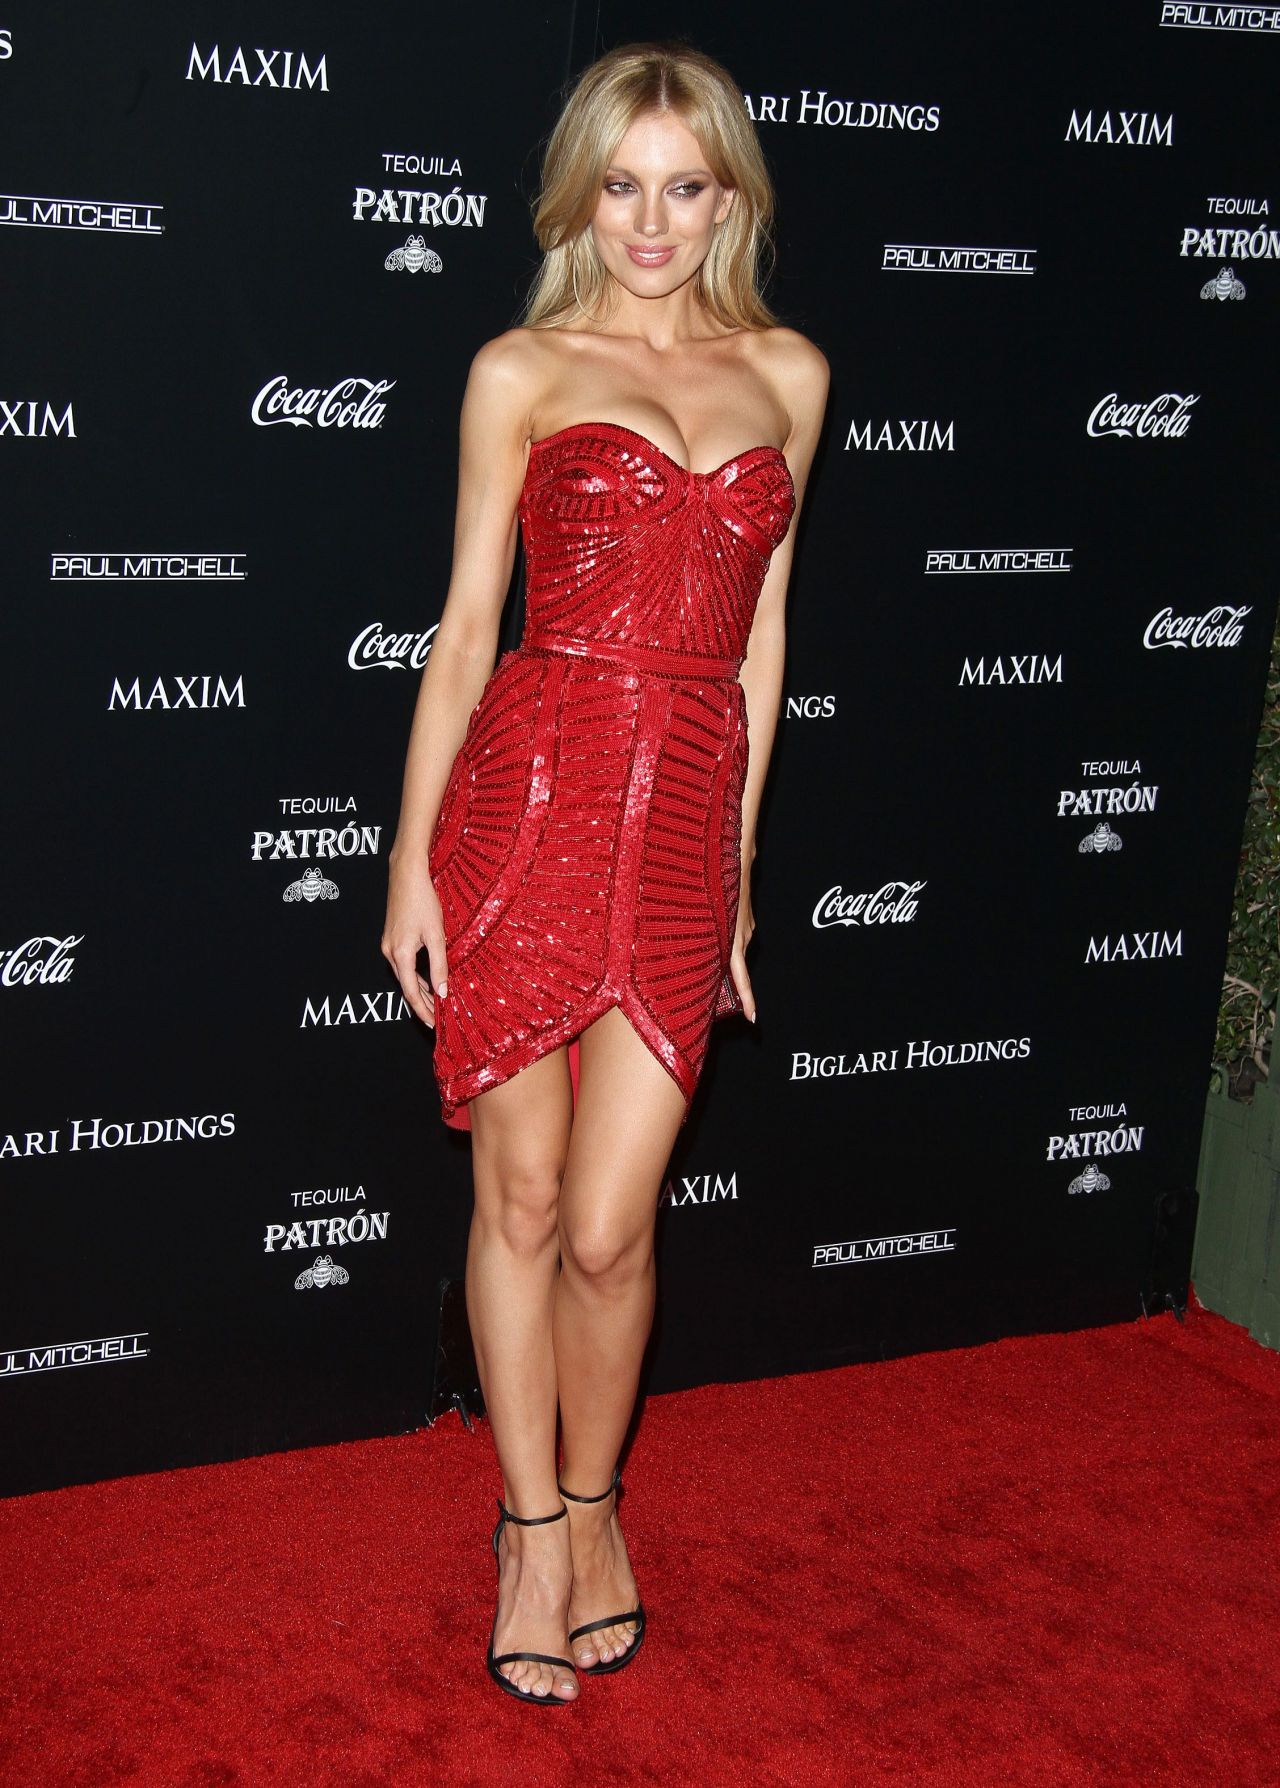 Bar Paly  Maxims Hot 100 Women Of 2014 Celebration - Game Of Thrones Hairstyles